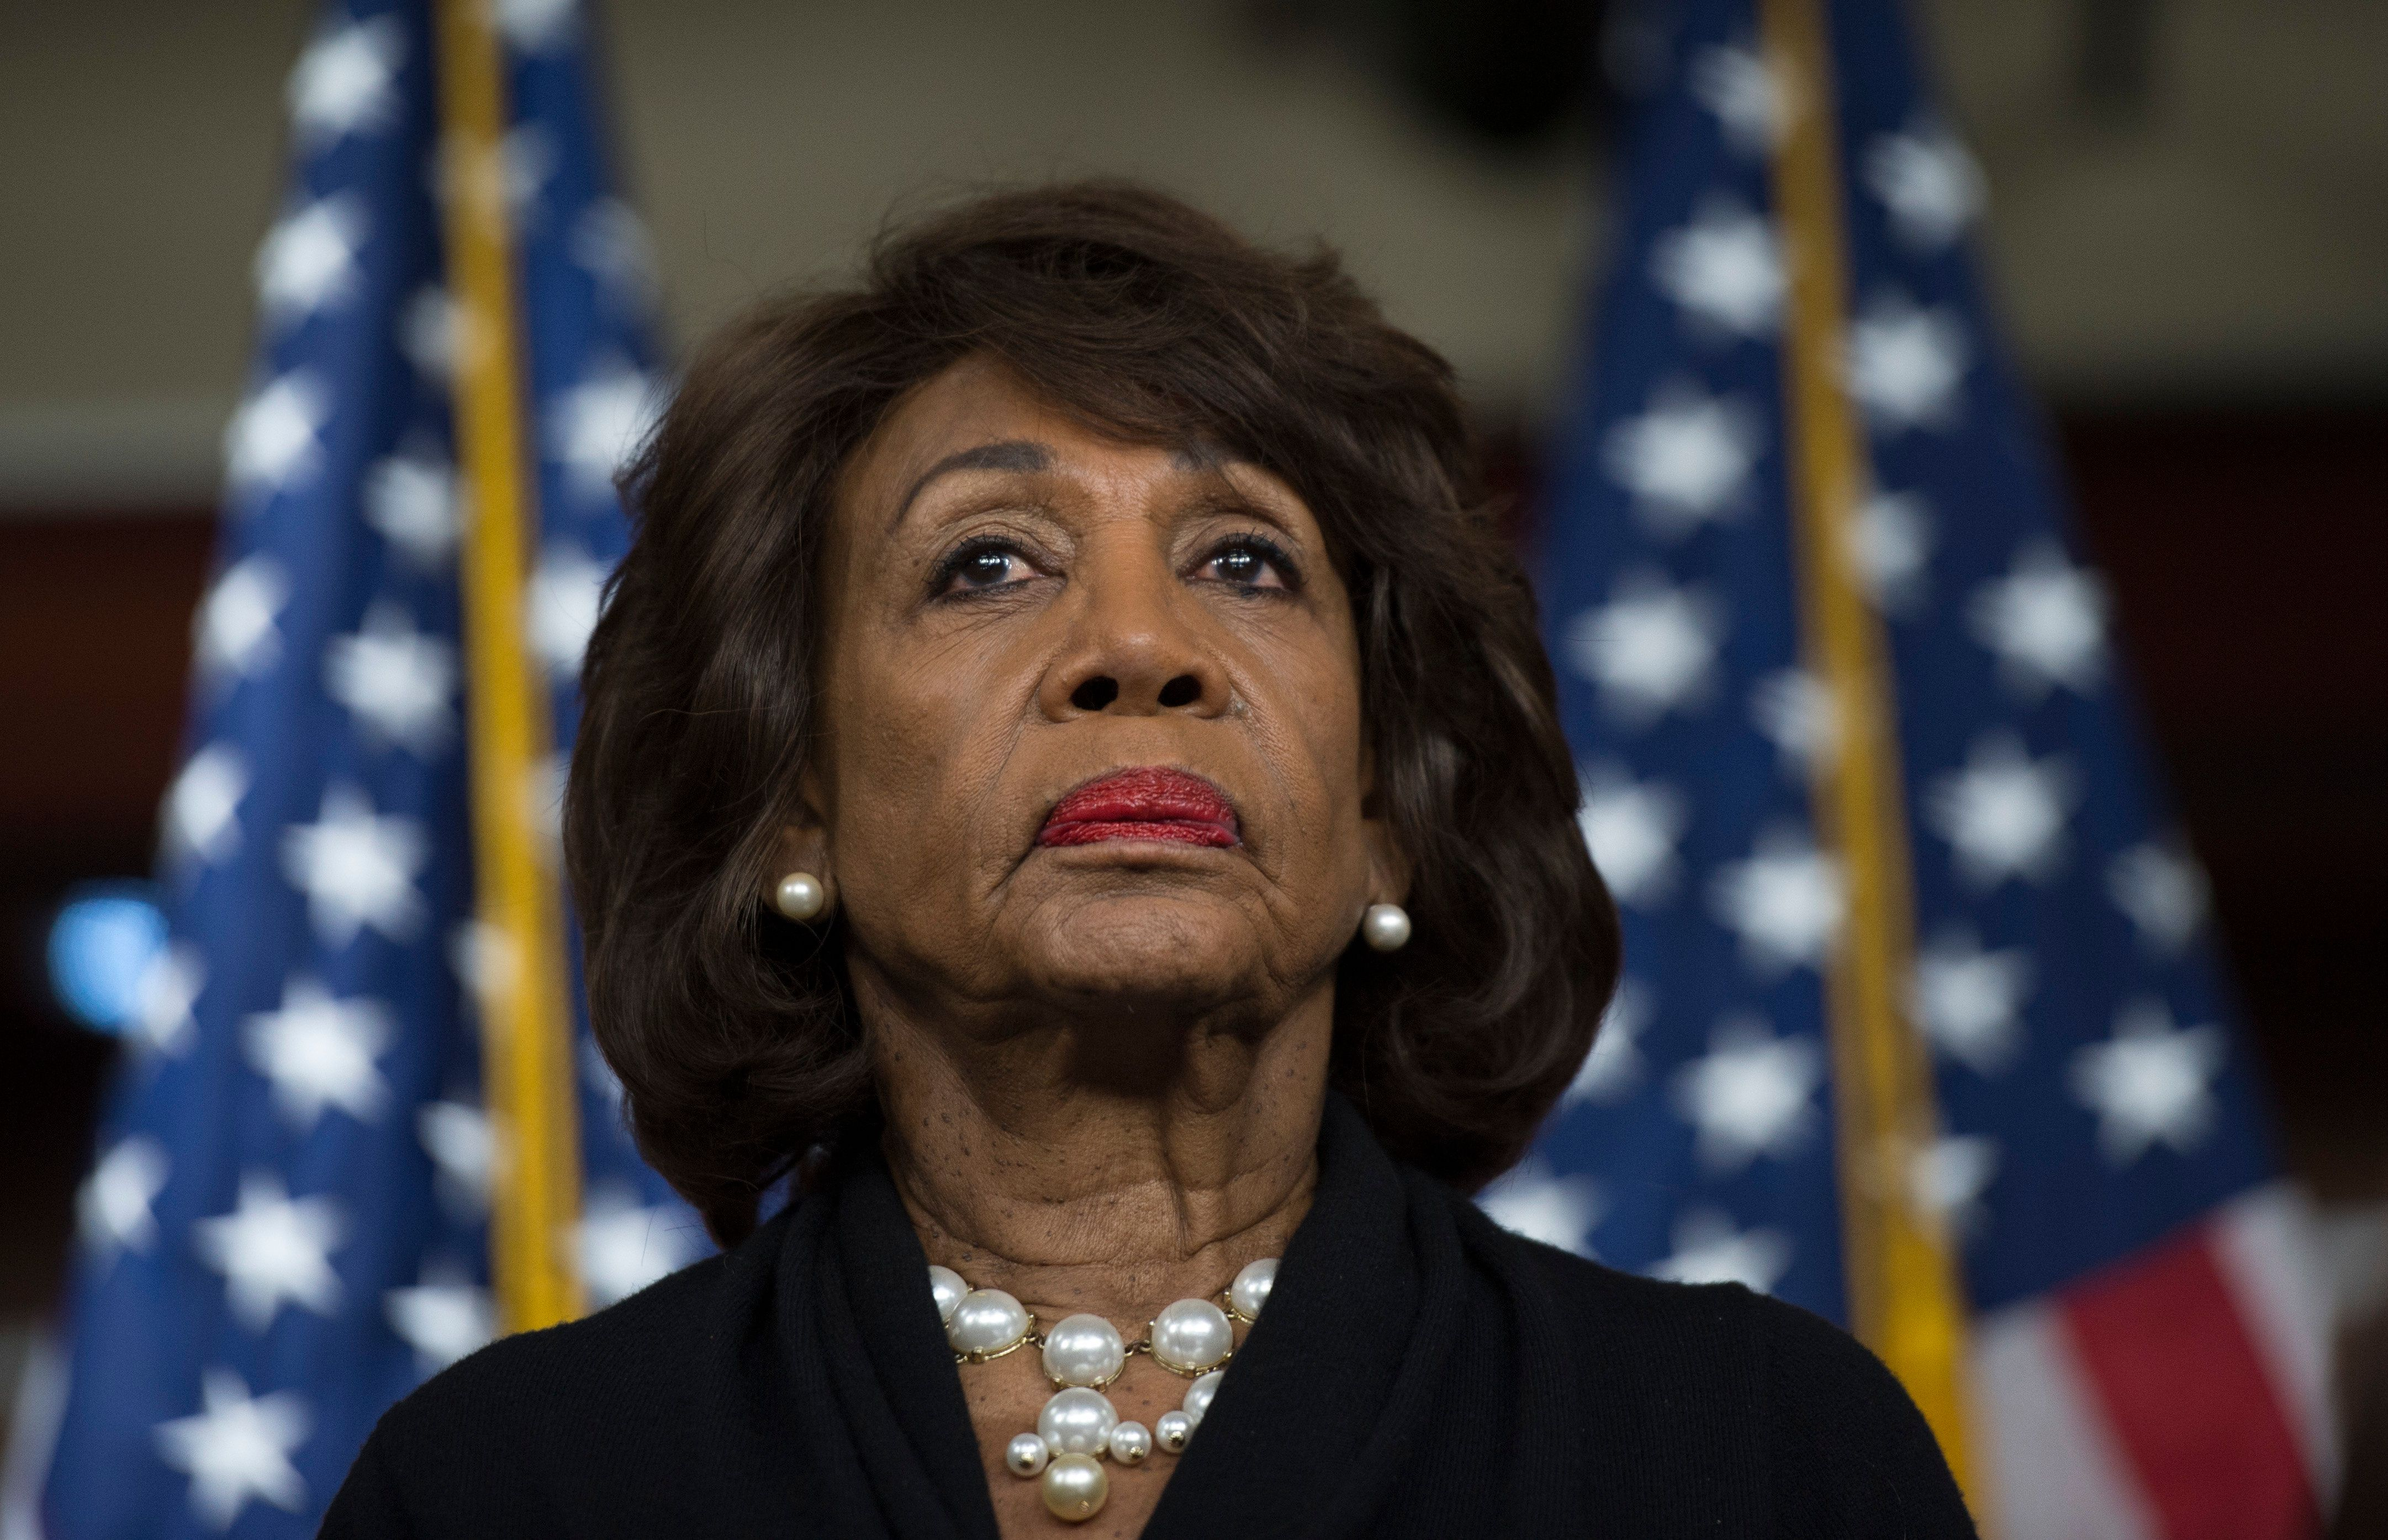 Rep. Maxine Waters (D-Calif.) has become a viral internet sensation for her fierce and colorful denunciations of President Do